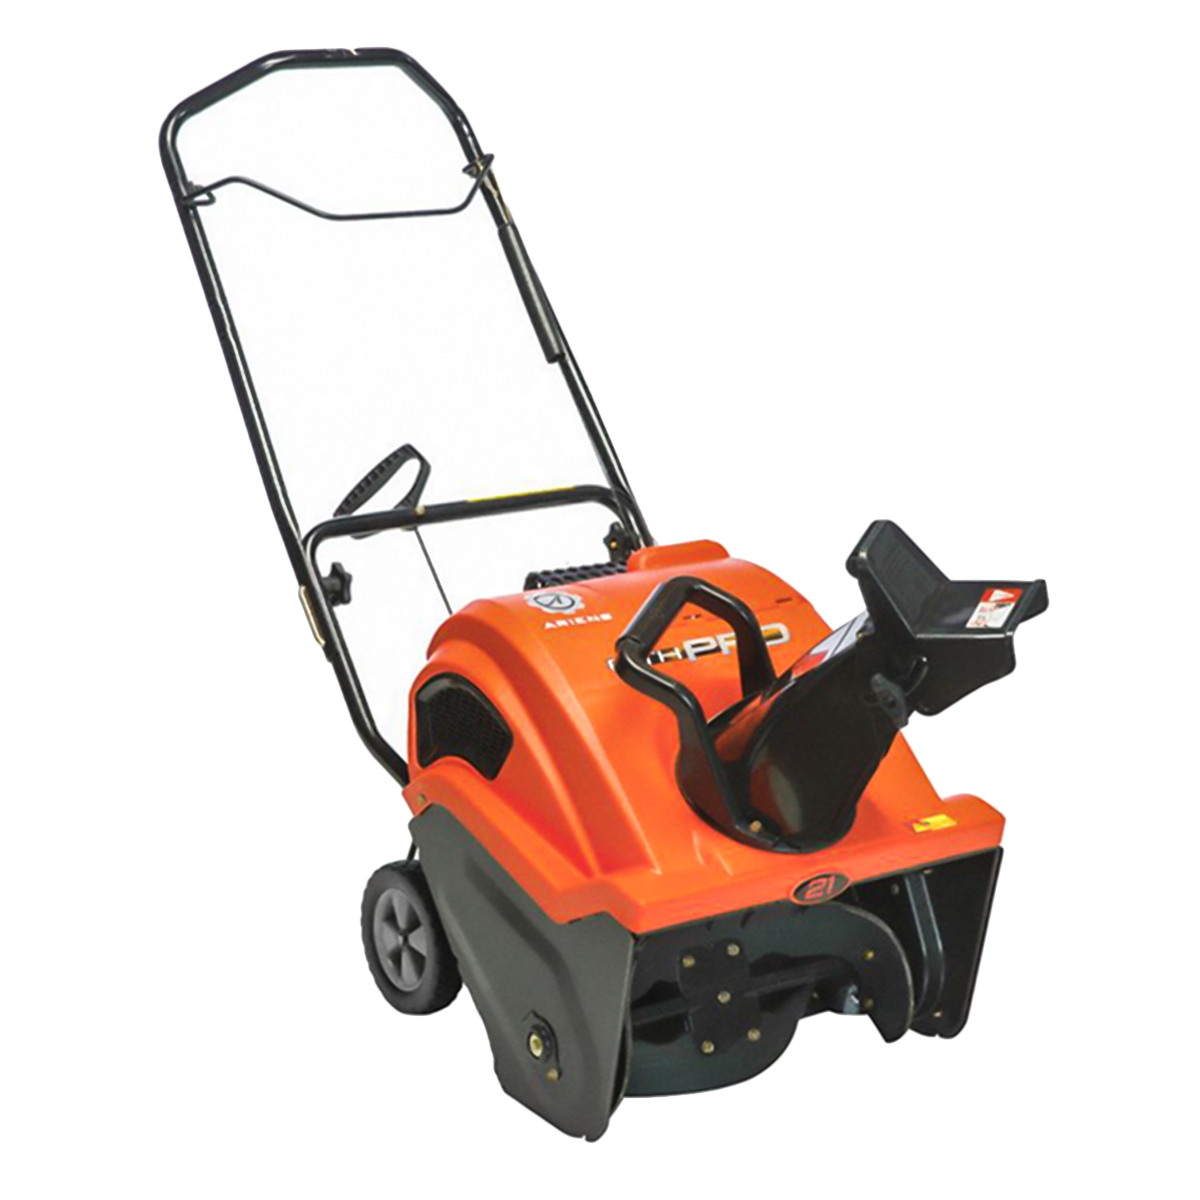 hight resolution of ariens path pro ss21e gas single stage snow blower electric start 938034